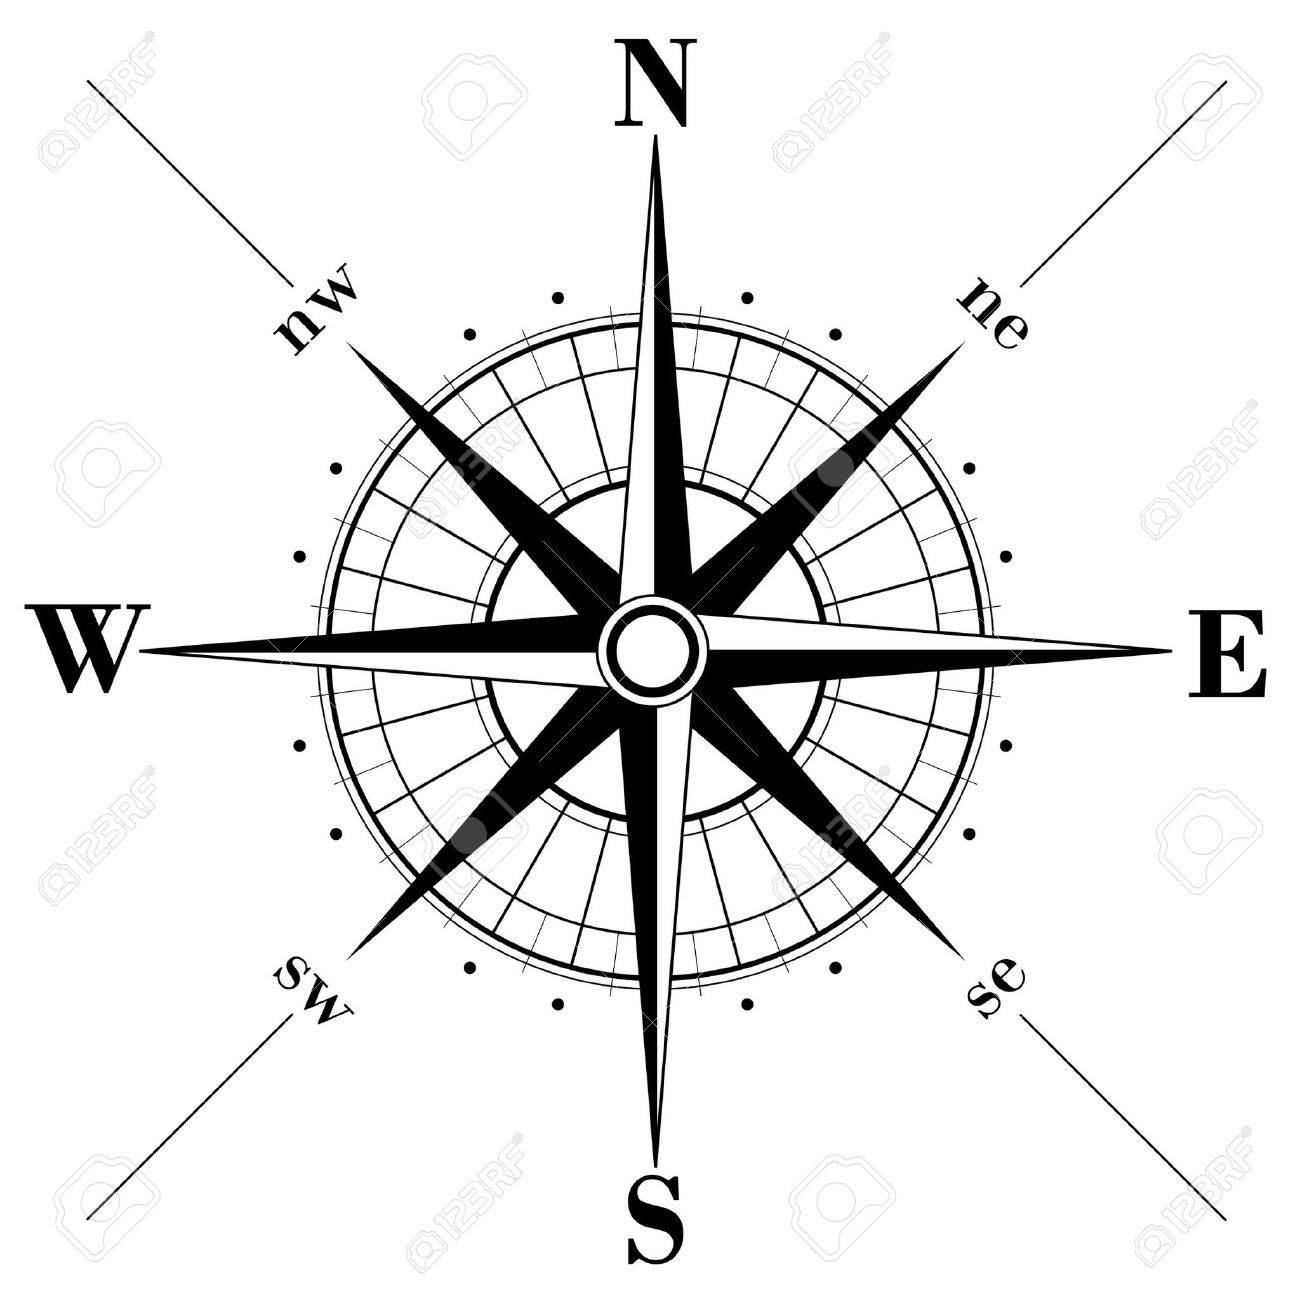 compass rose  Black compass Compass Rose Clipart Black And White